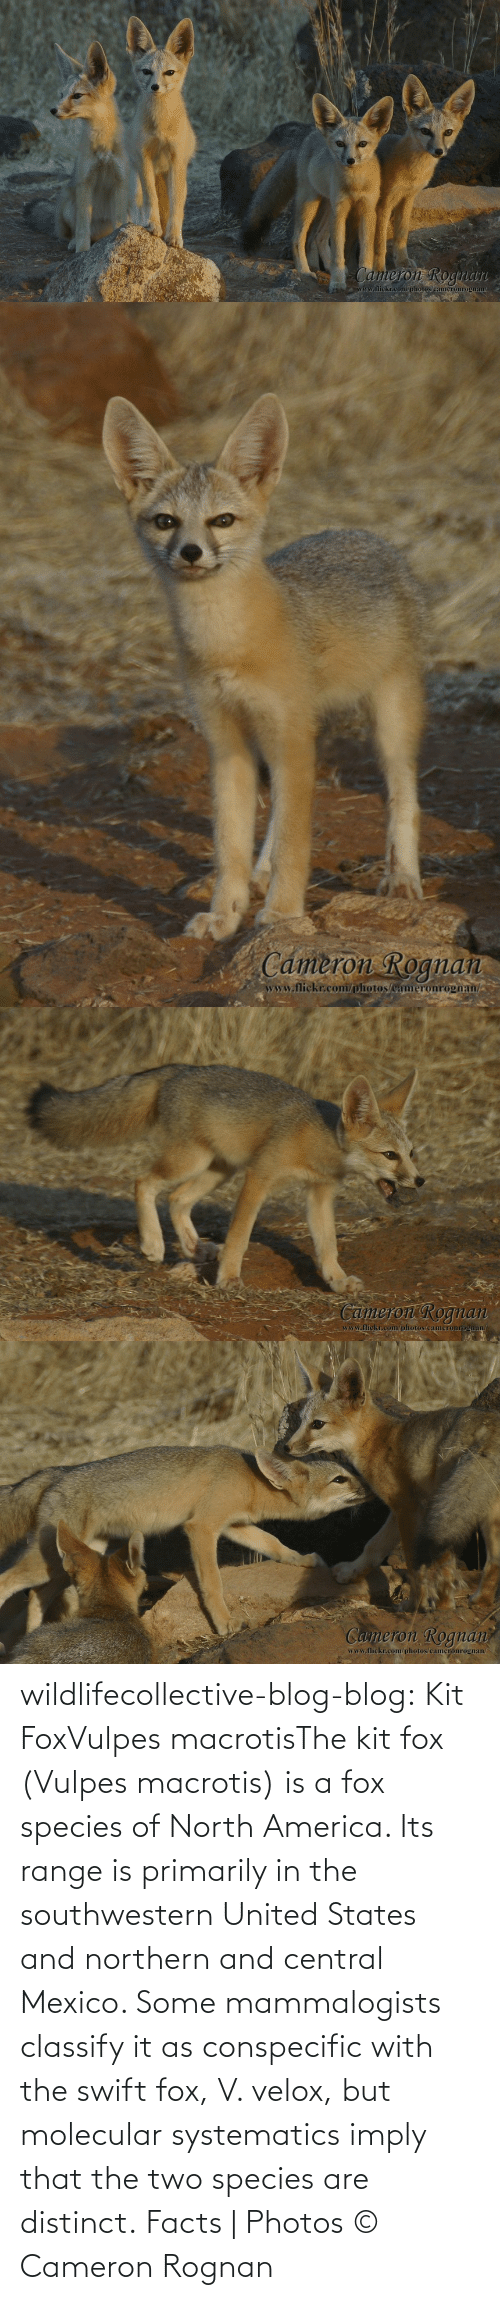 United: wildlifecollective-blog-blog:  Kit FoxVulpes macrotisThe kit fox (Vulpes macrotis) is a fox species of North America. Its range is primarily in the southwestern United States and northern and central Mexico. Some mammalogists classify it as conspecific with the swift fox, V. velox, but molecular systematics imply that the two species are distinct. Facts | Photos © Cameron Rognan